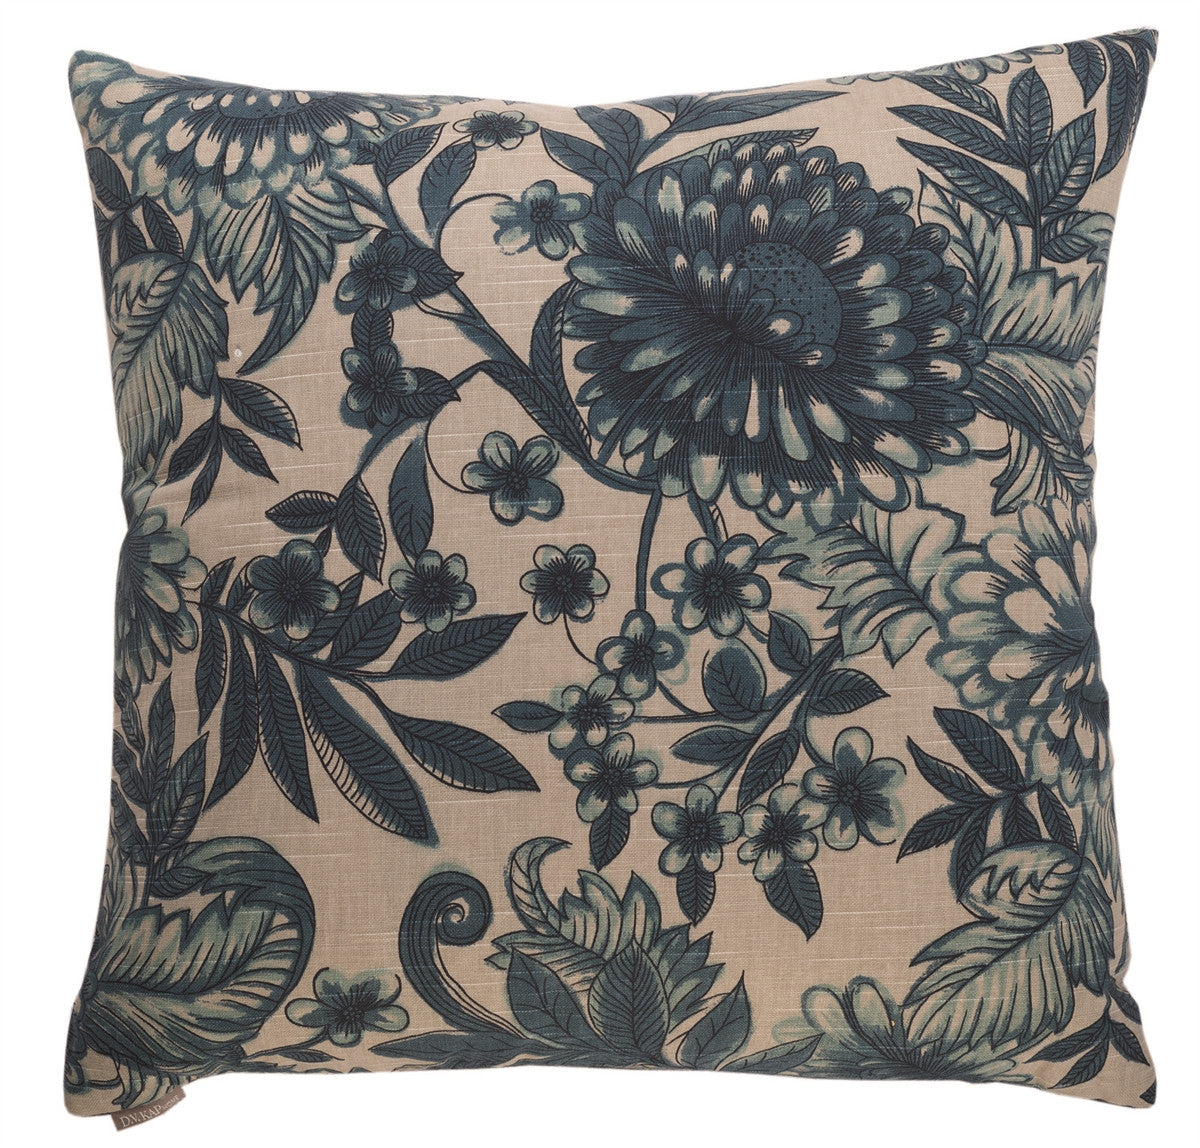 DV Kap Home - Morrocco Toss Pillow